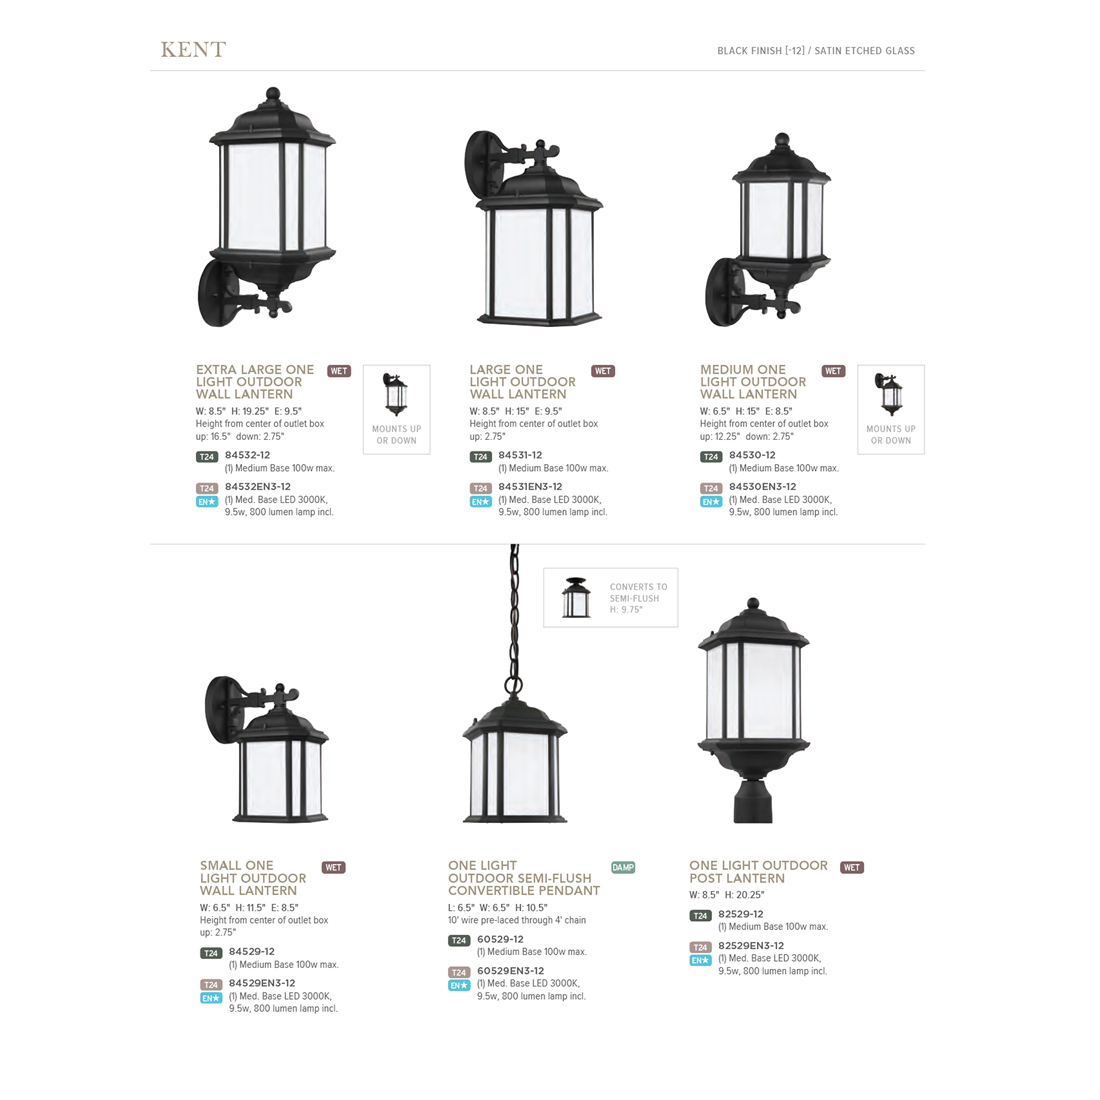 Sea Gull Lighting Kent 1 Light Outdoor Black Post Light